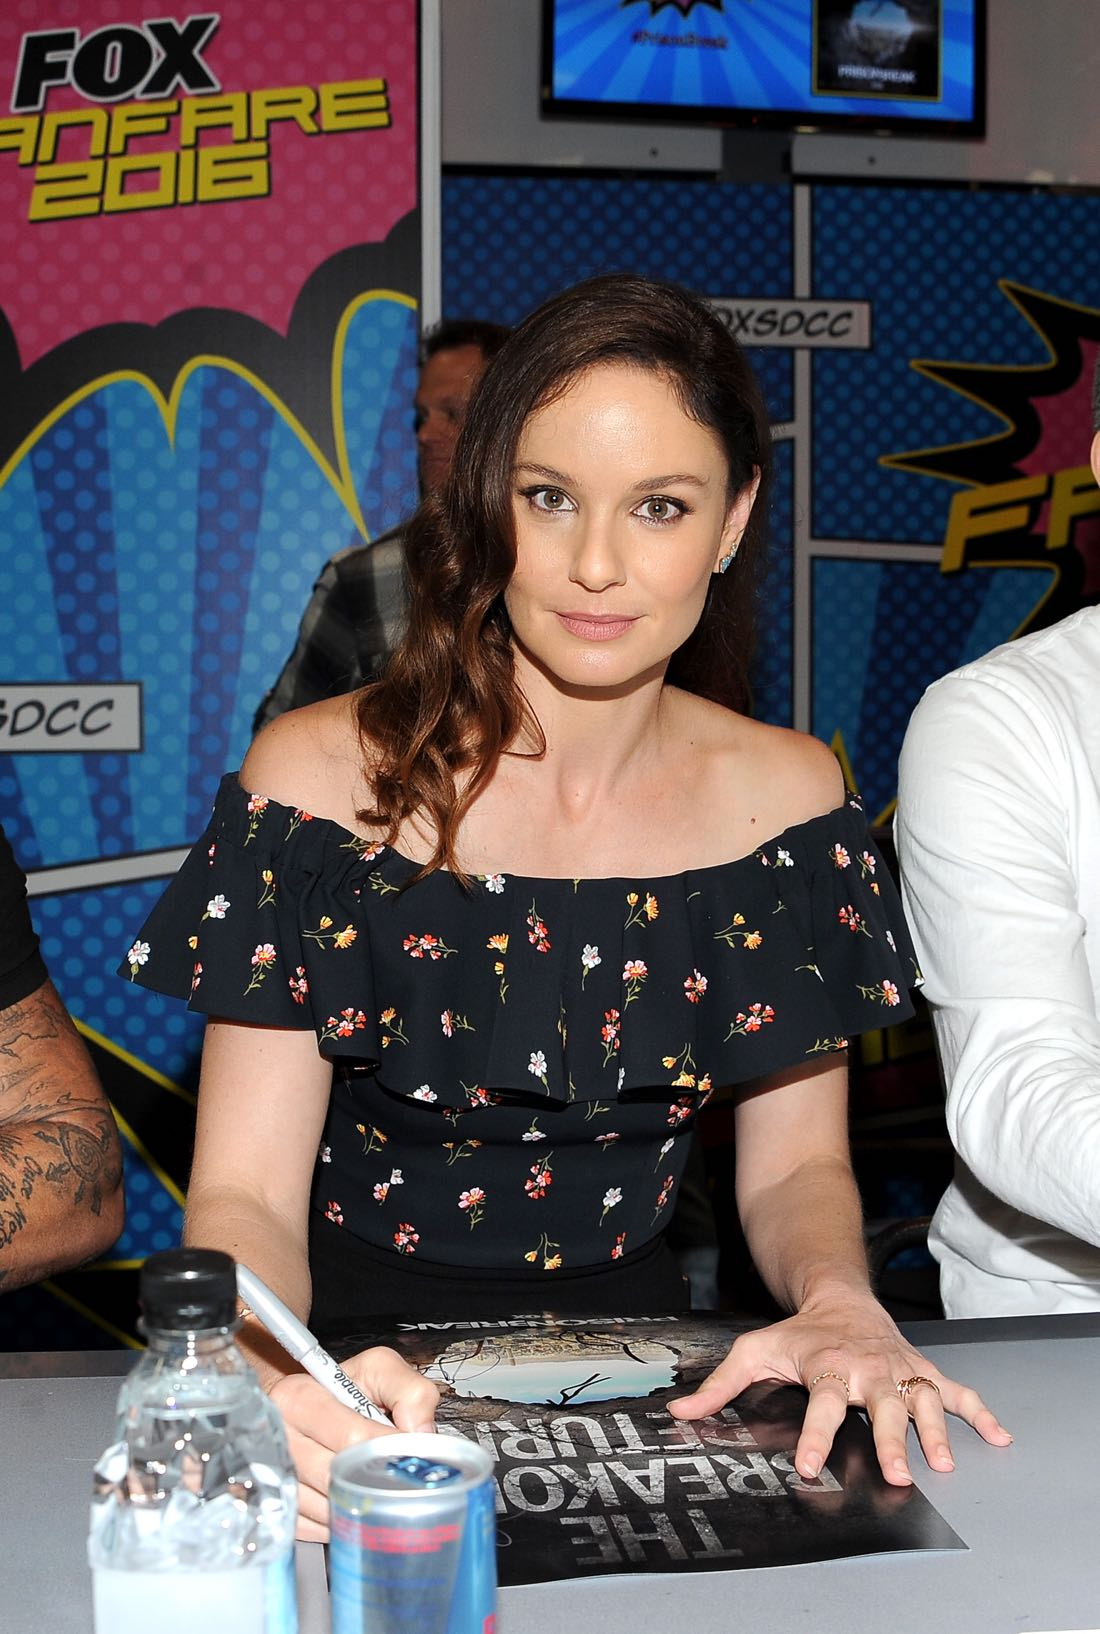 FOX FANFARE AT SAN DIEGO COMIC-CON © 2016: PRISON BREAK cast member Sarah Wayne Callies during the PRISON BREAK booth signing on Sunday, July 24 at the FOX FANFARE AT SAN DIEGO COMIC-CON © 2016. CR: Scott Kirkland/FOX © 2016 FOX BROADCASTING